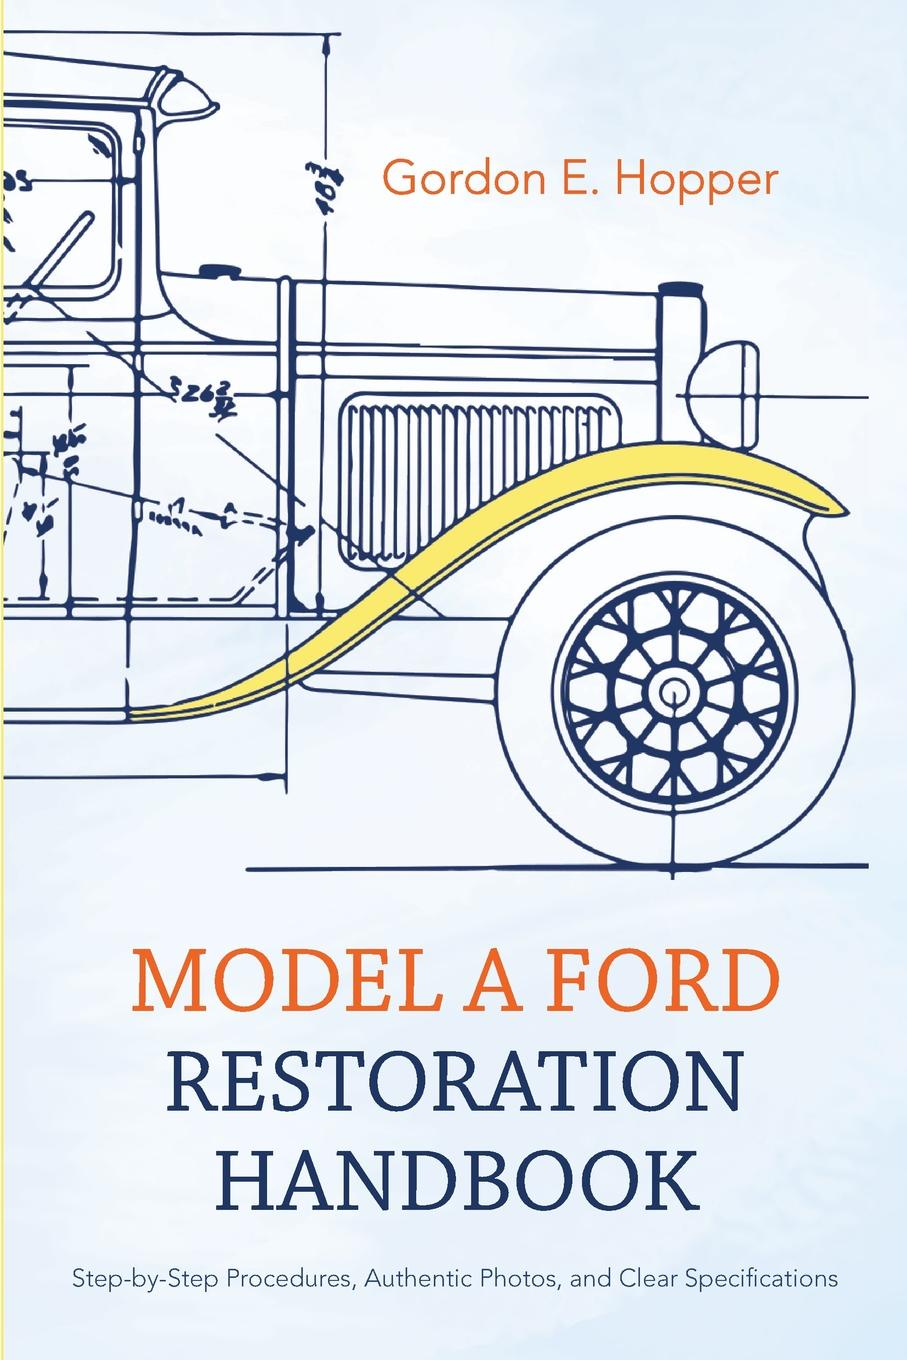 Gordon E. Hopper Model A Ford Restoration Handbook pull starter single pawl for chinese 170f diesel engine new cheap generator recoil starter assembly replacement parts